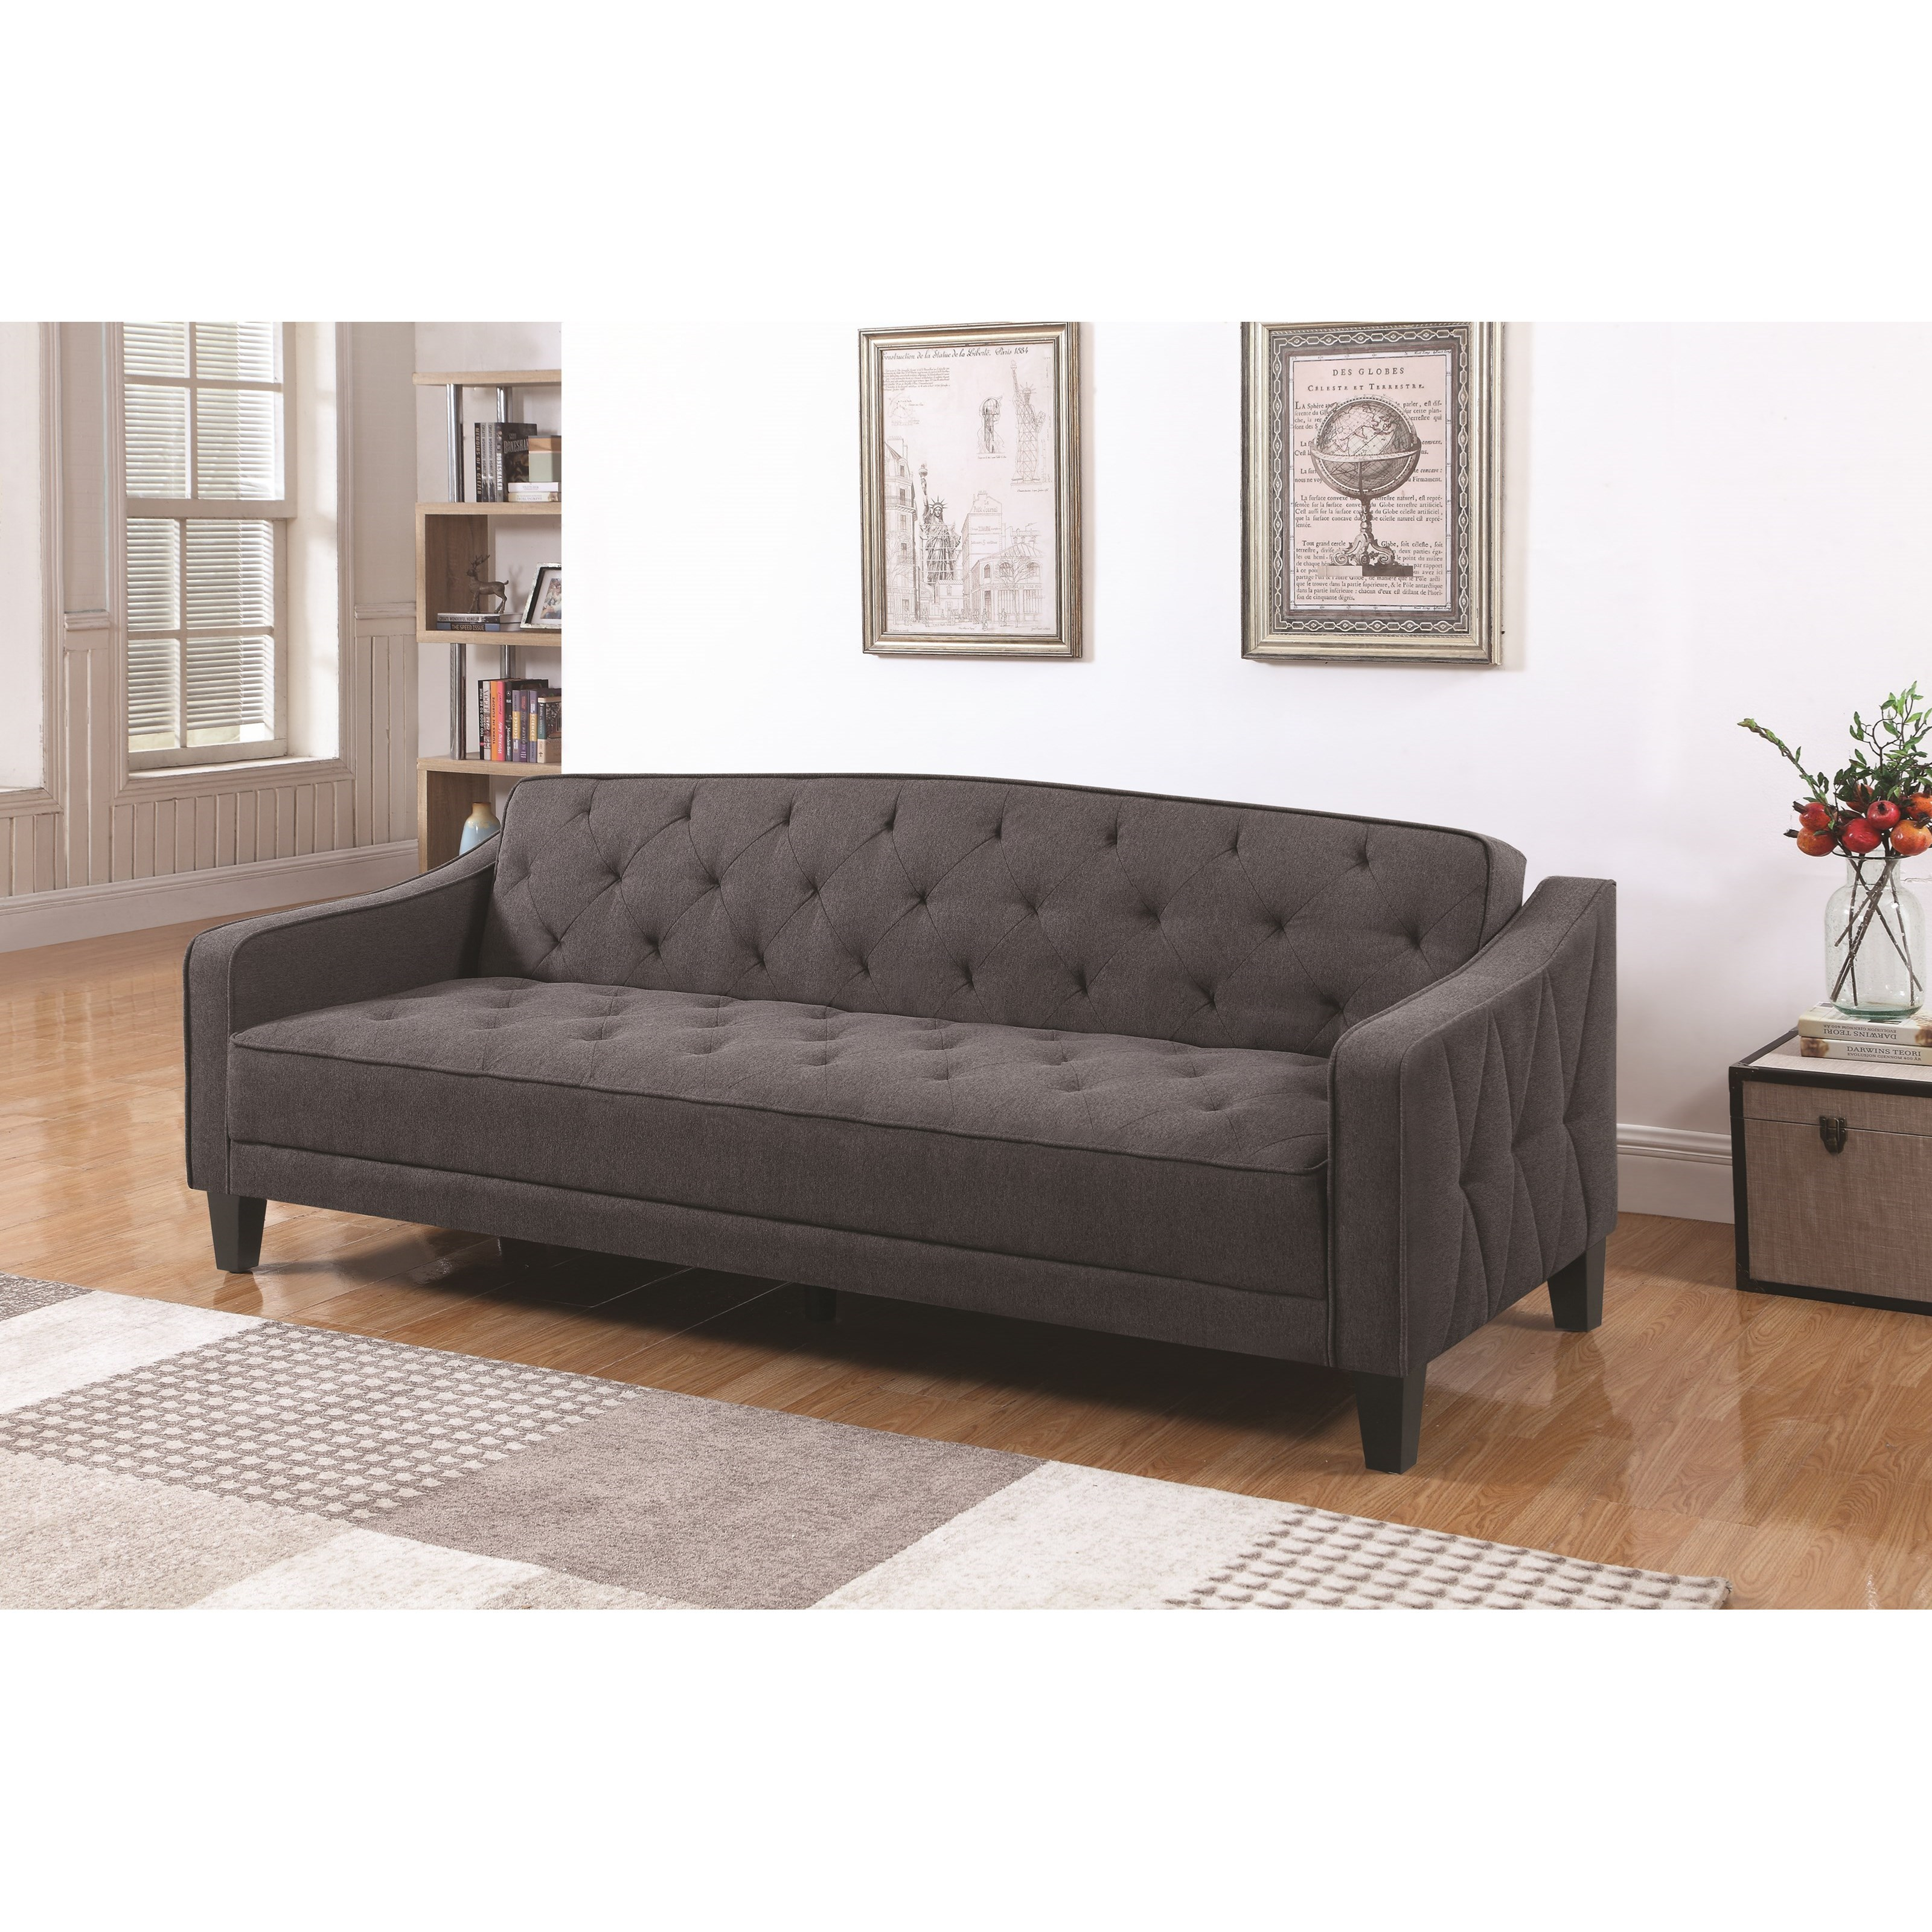 ideas recliners cozy room couches target wal futons sets at table walmart bed kitchen beds furniture sofa using cheap inspiring decorating sale dining for futon home